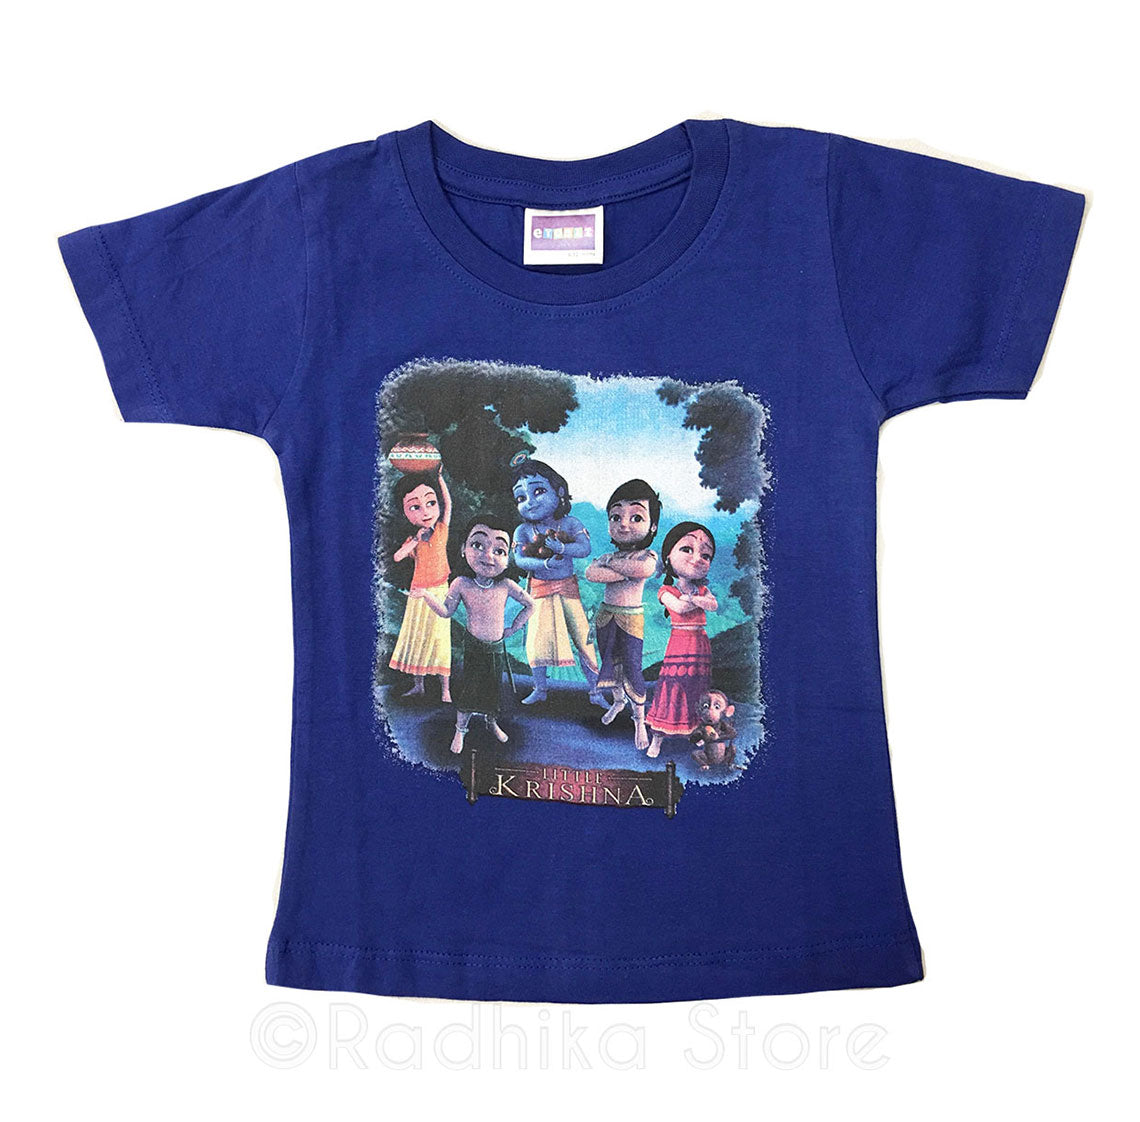 Krishna and Friends - Blue- Short Sleeve- Size- 6 to 12 Months